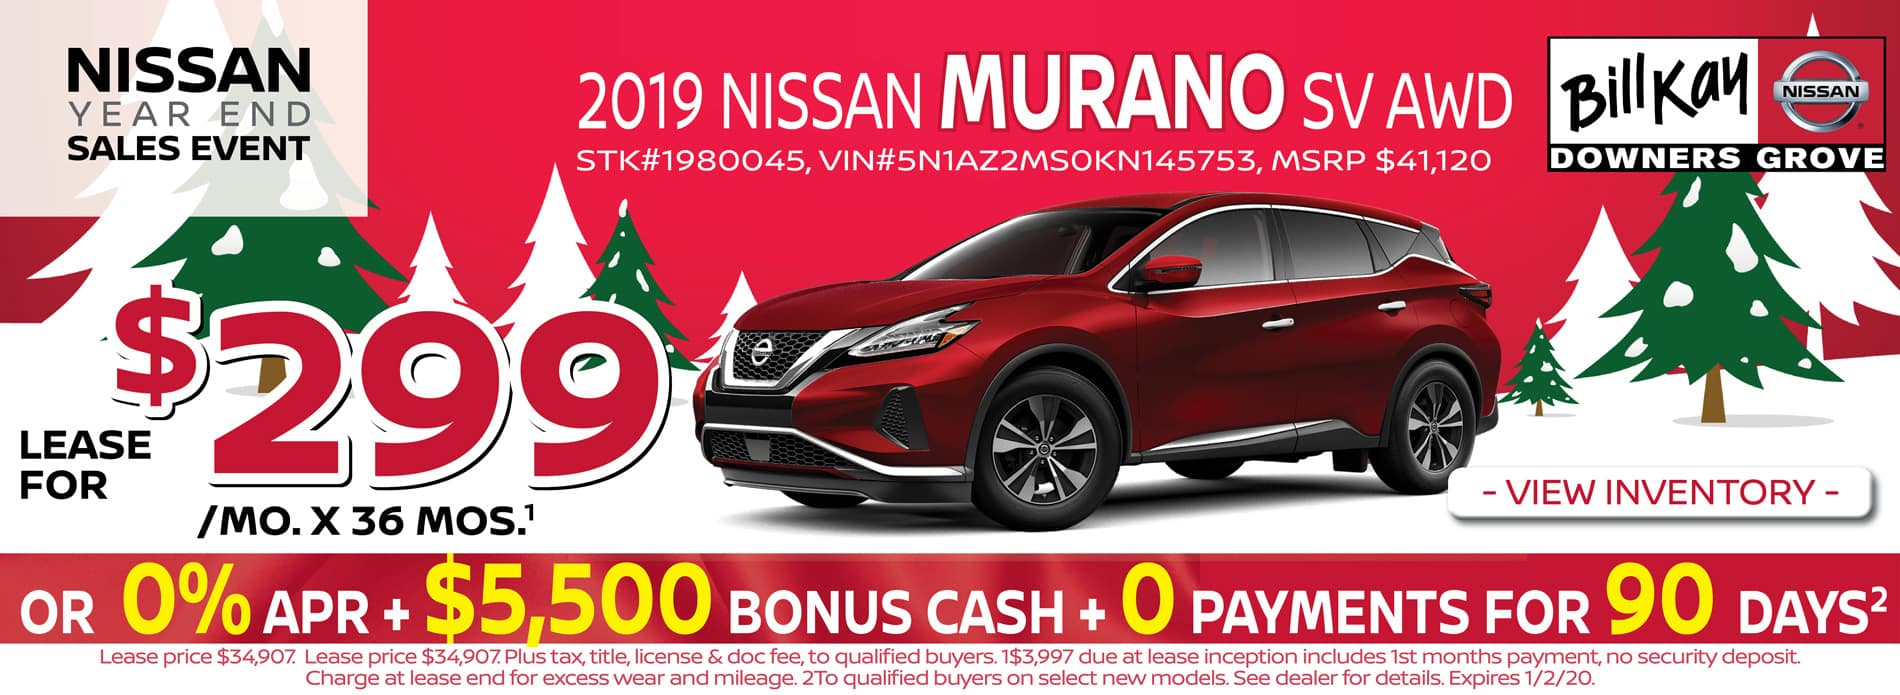 Lease a 2019 Nissan Murano SV for $299/mo for 36 mos.